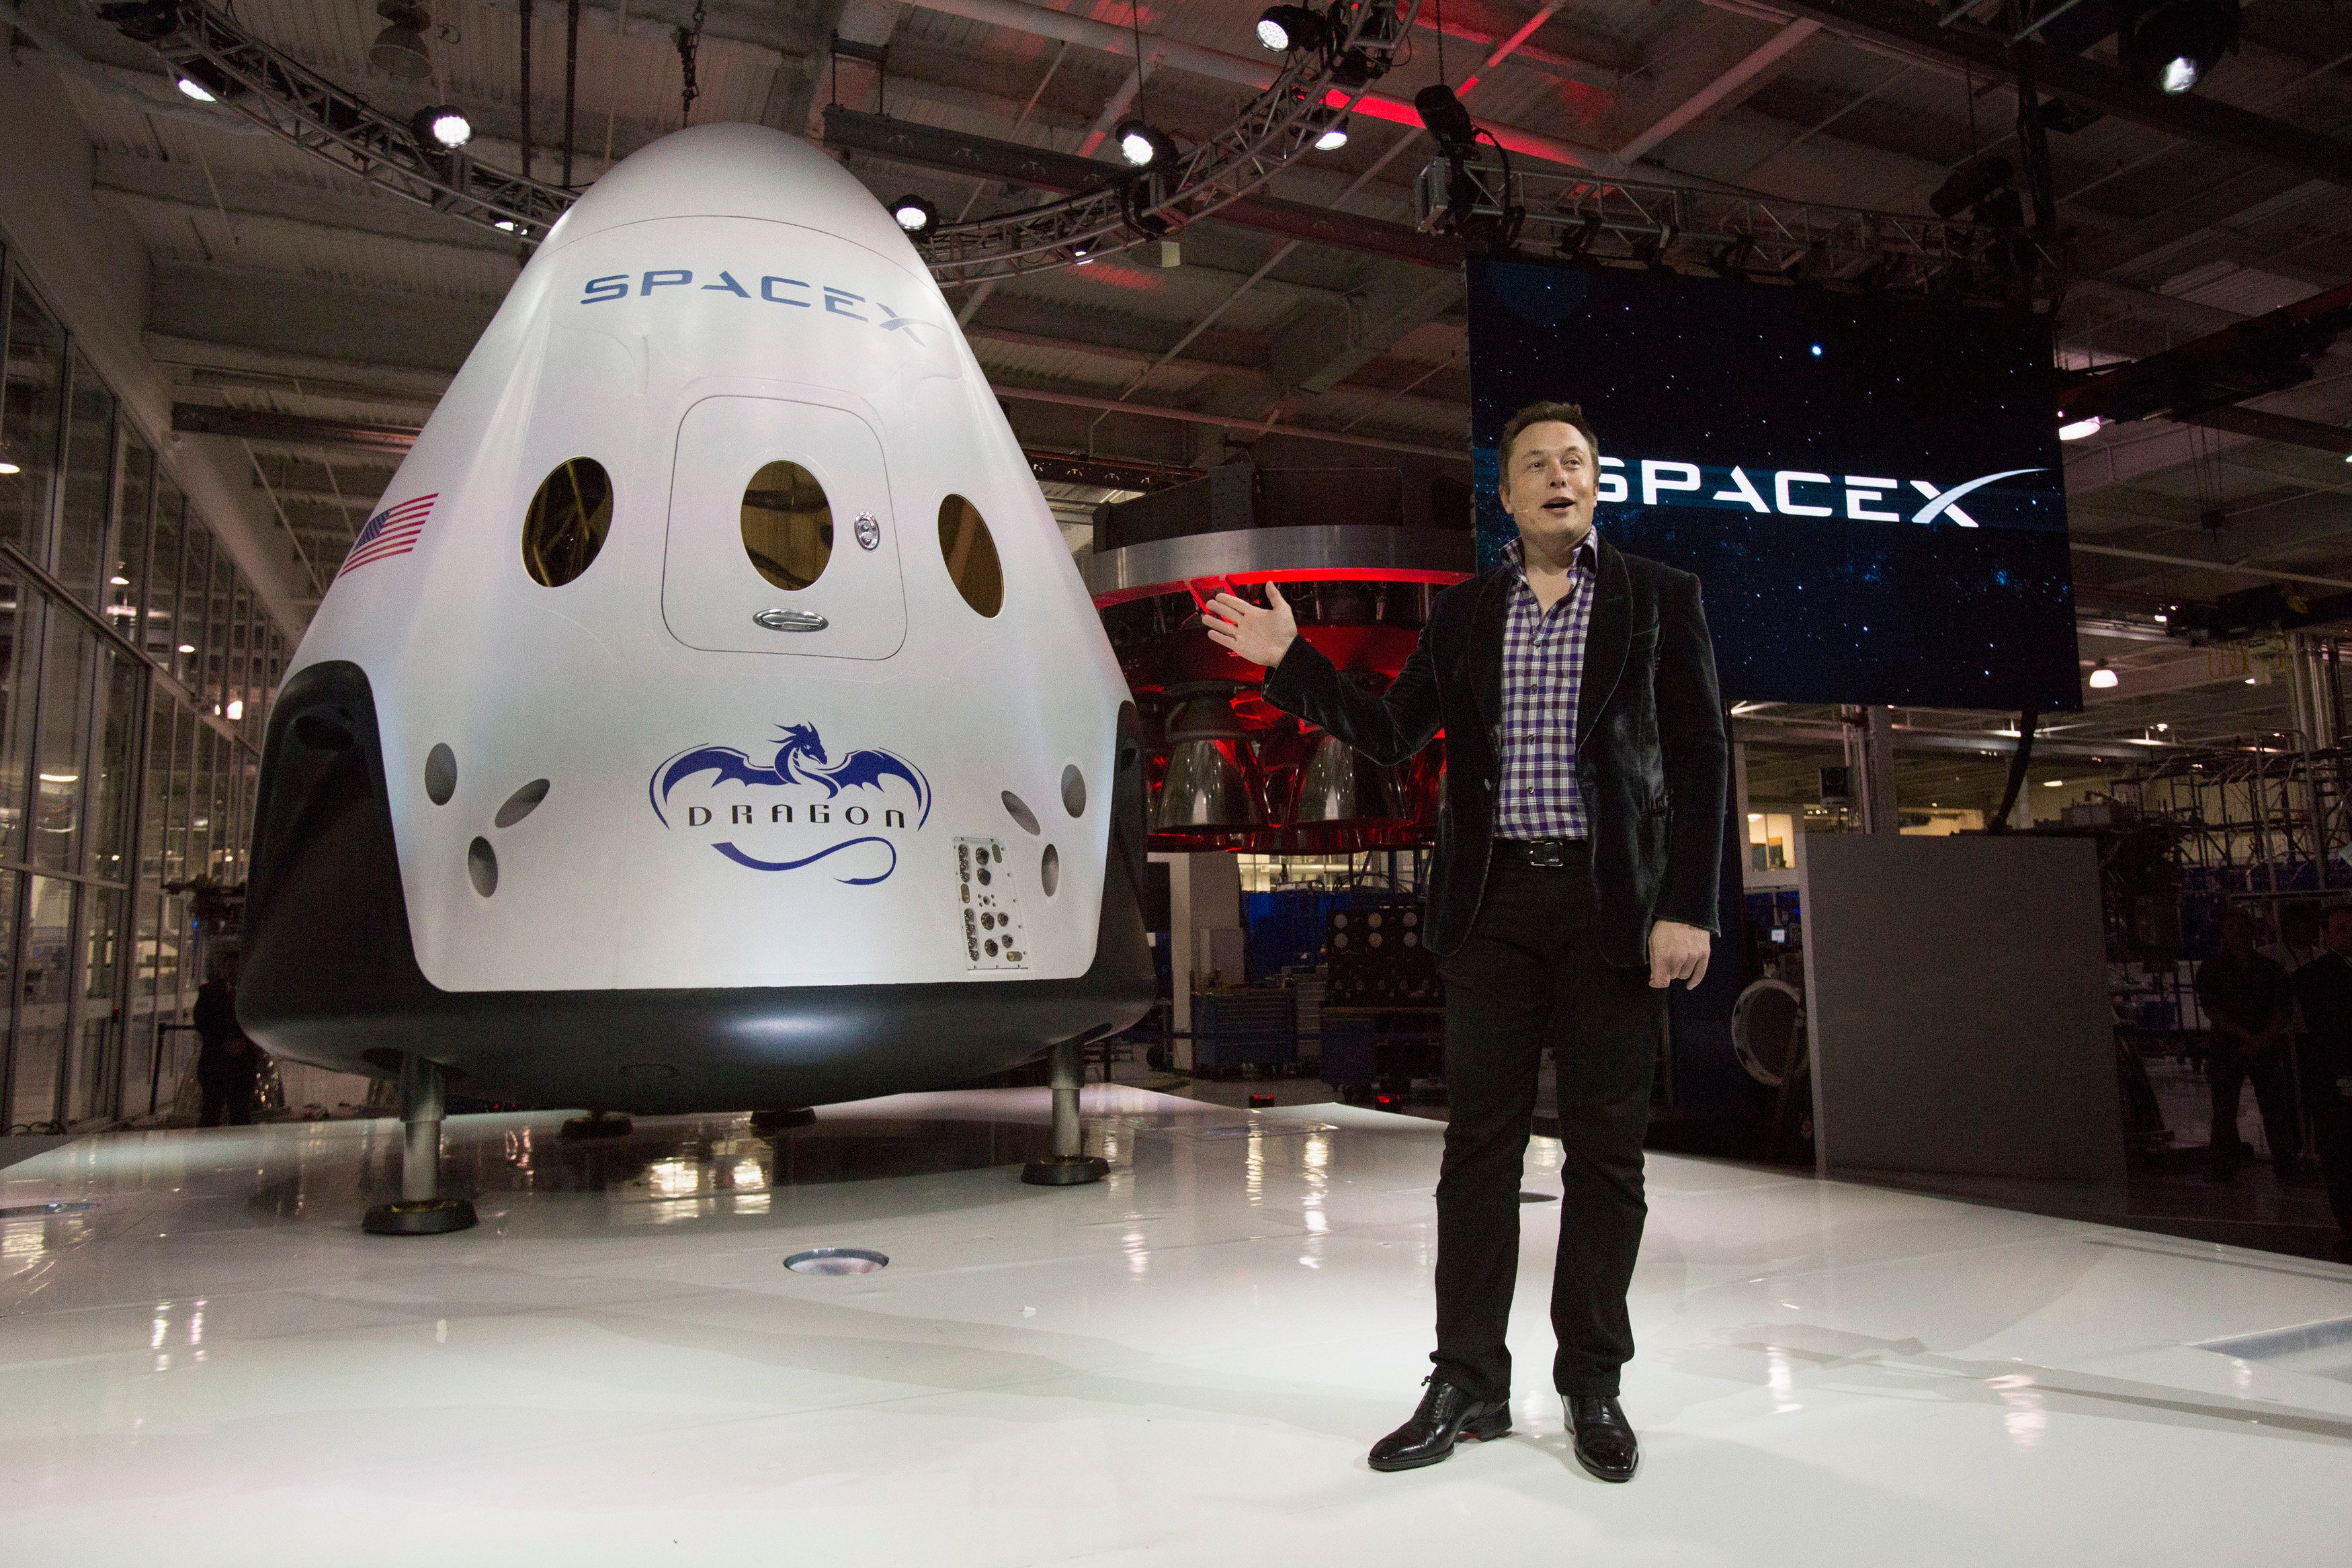 SpaceX CEO Elon Musk speaks after unveiling the Dragon V2 spacecraft in Hawthorne, California in May 2014.